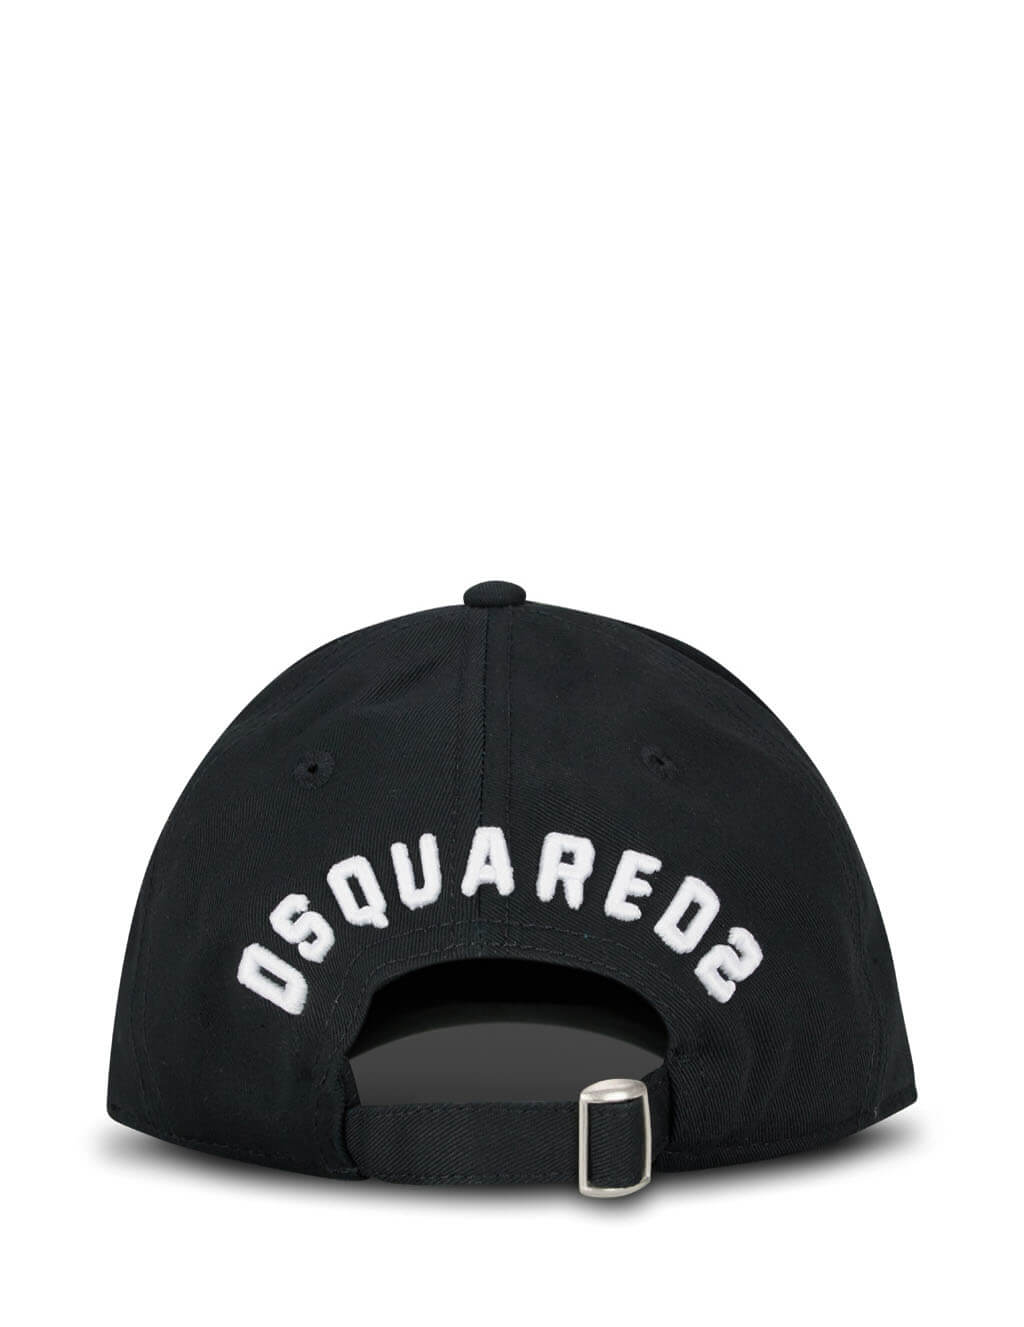 Dsquared2 Men's Giulio Fashion Black Embroidered Baseball Cap BCM015905C00001M063